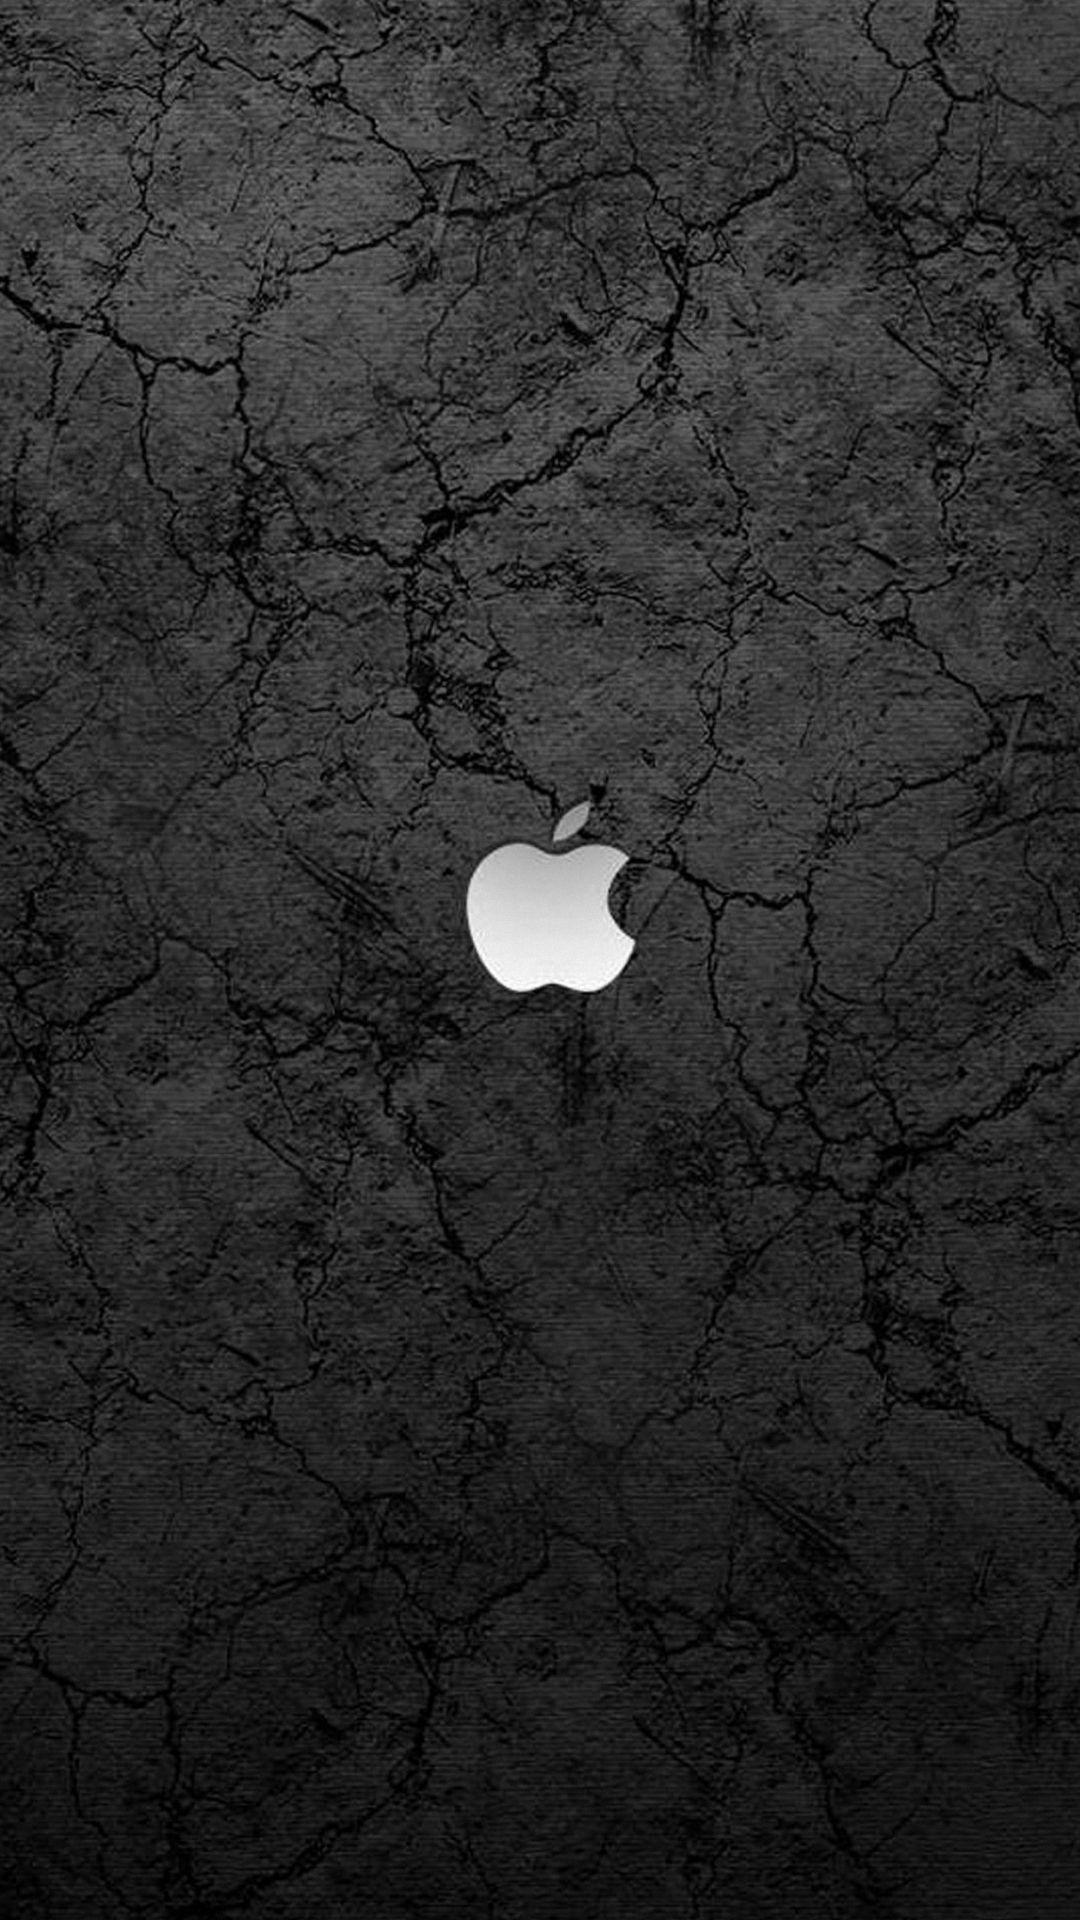 Beautiful Wallpapers For Iphone 11 Pro And Iphone 11 Pro Max Black Apple Wallpaper Black And White Wallpaper Iphone Apple Wallpaper Iphone